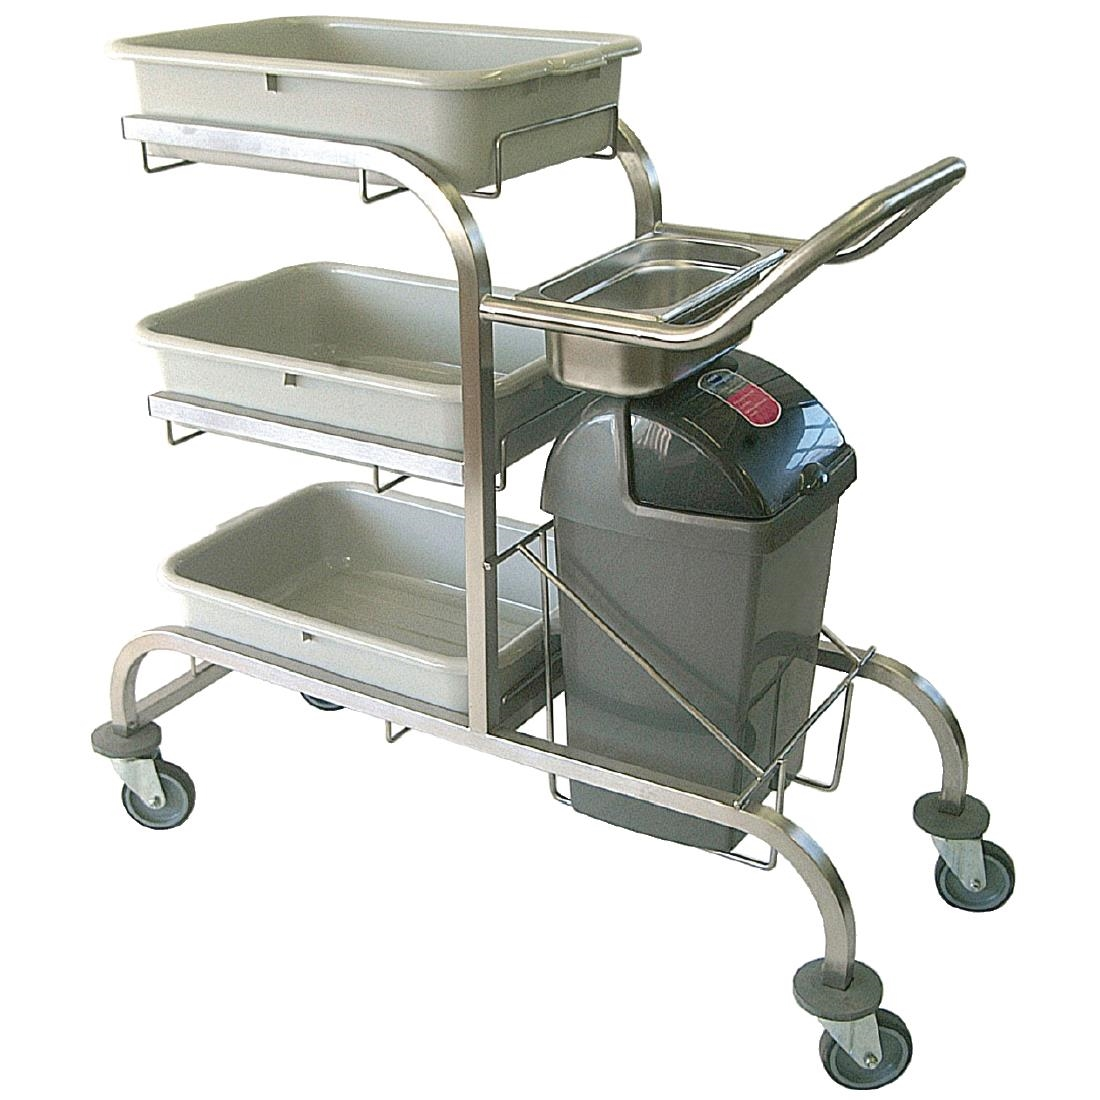 Image of Craven 3 Tier Stainless Steel Bussing Trolley